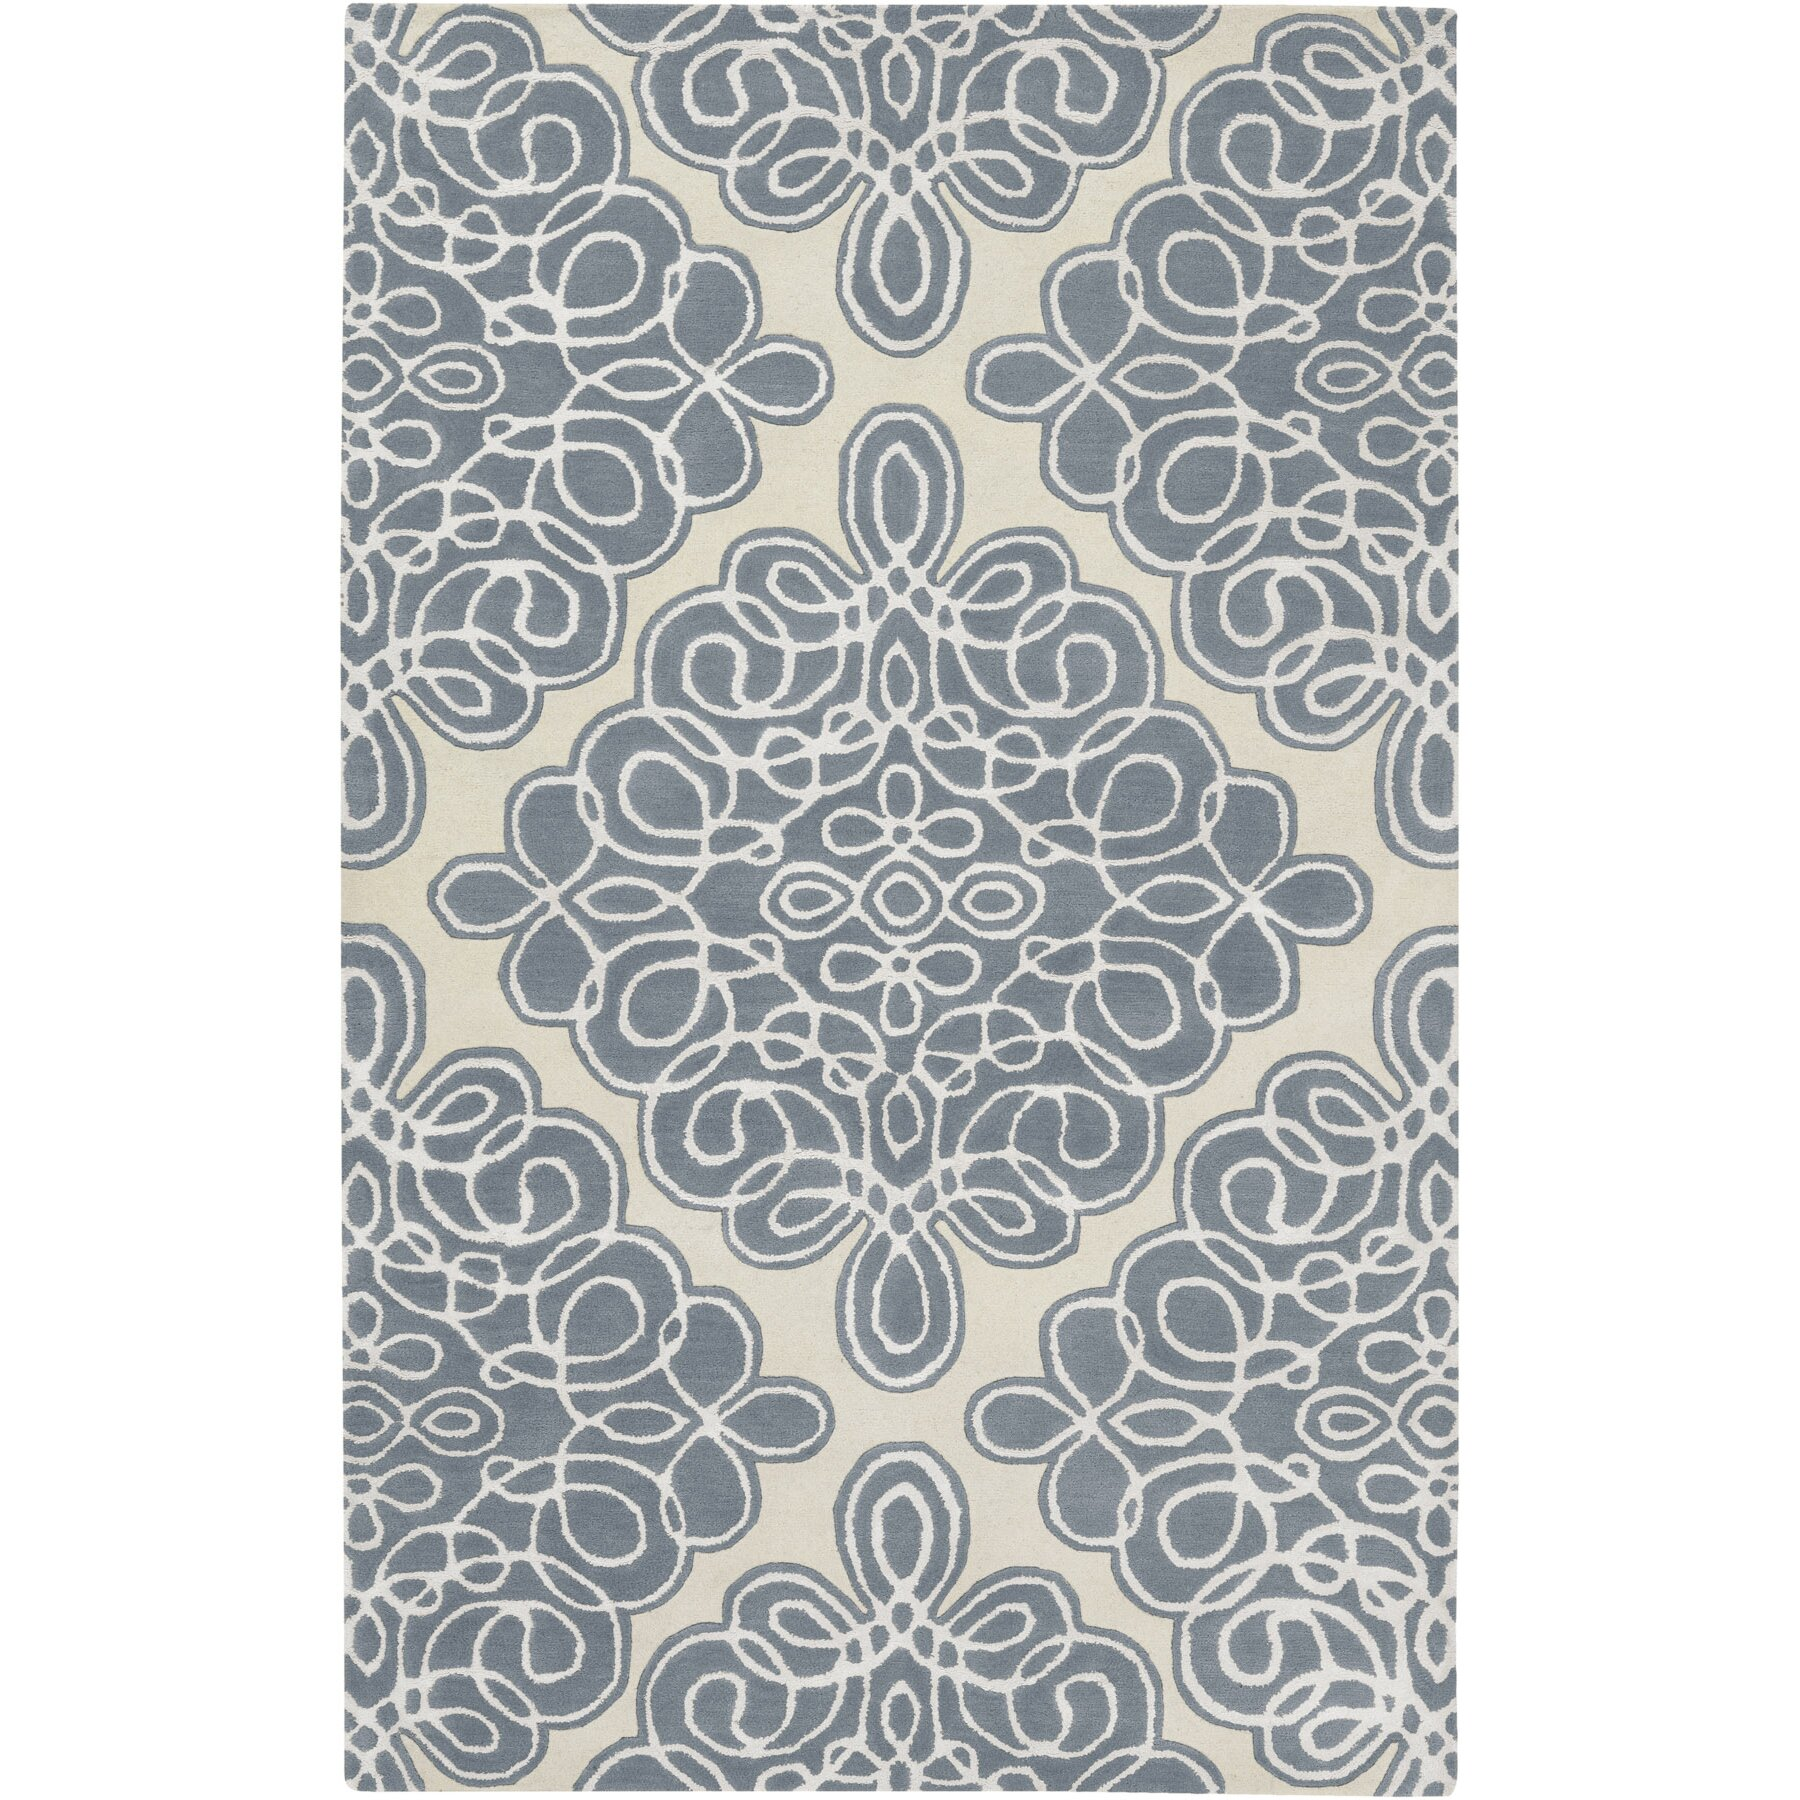 Candice olson modern classics cream area rug reviews for Candice olson area rugs